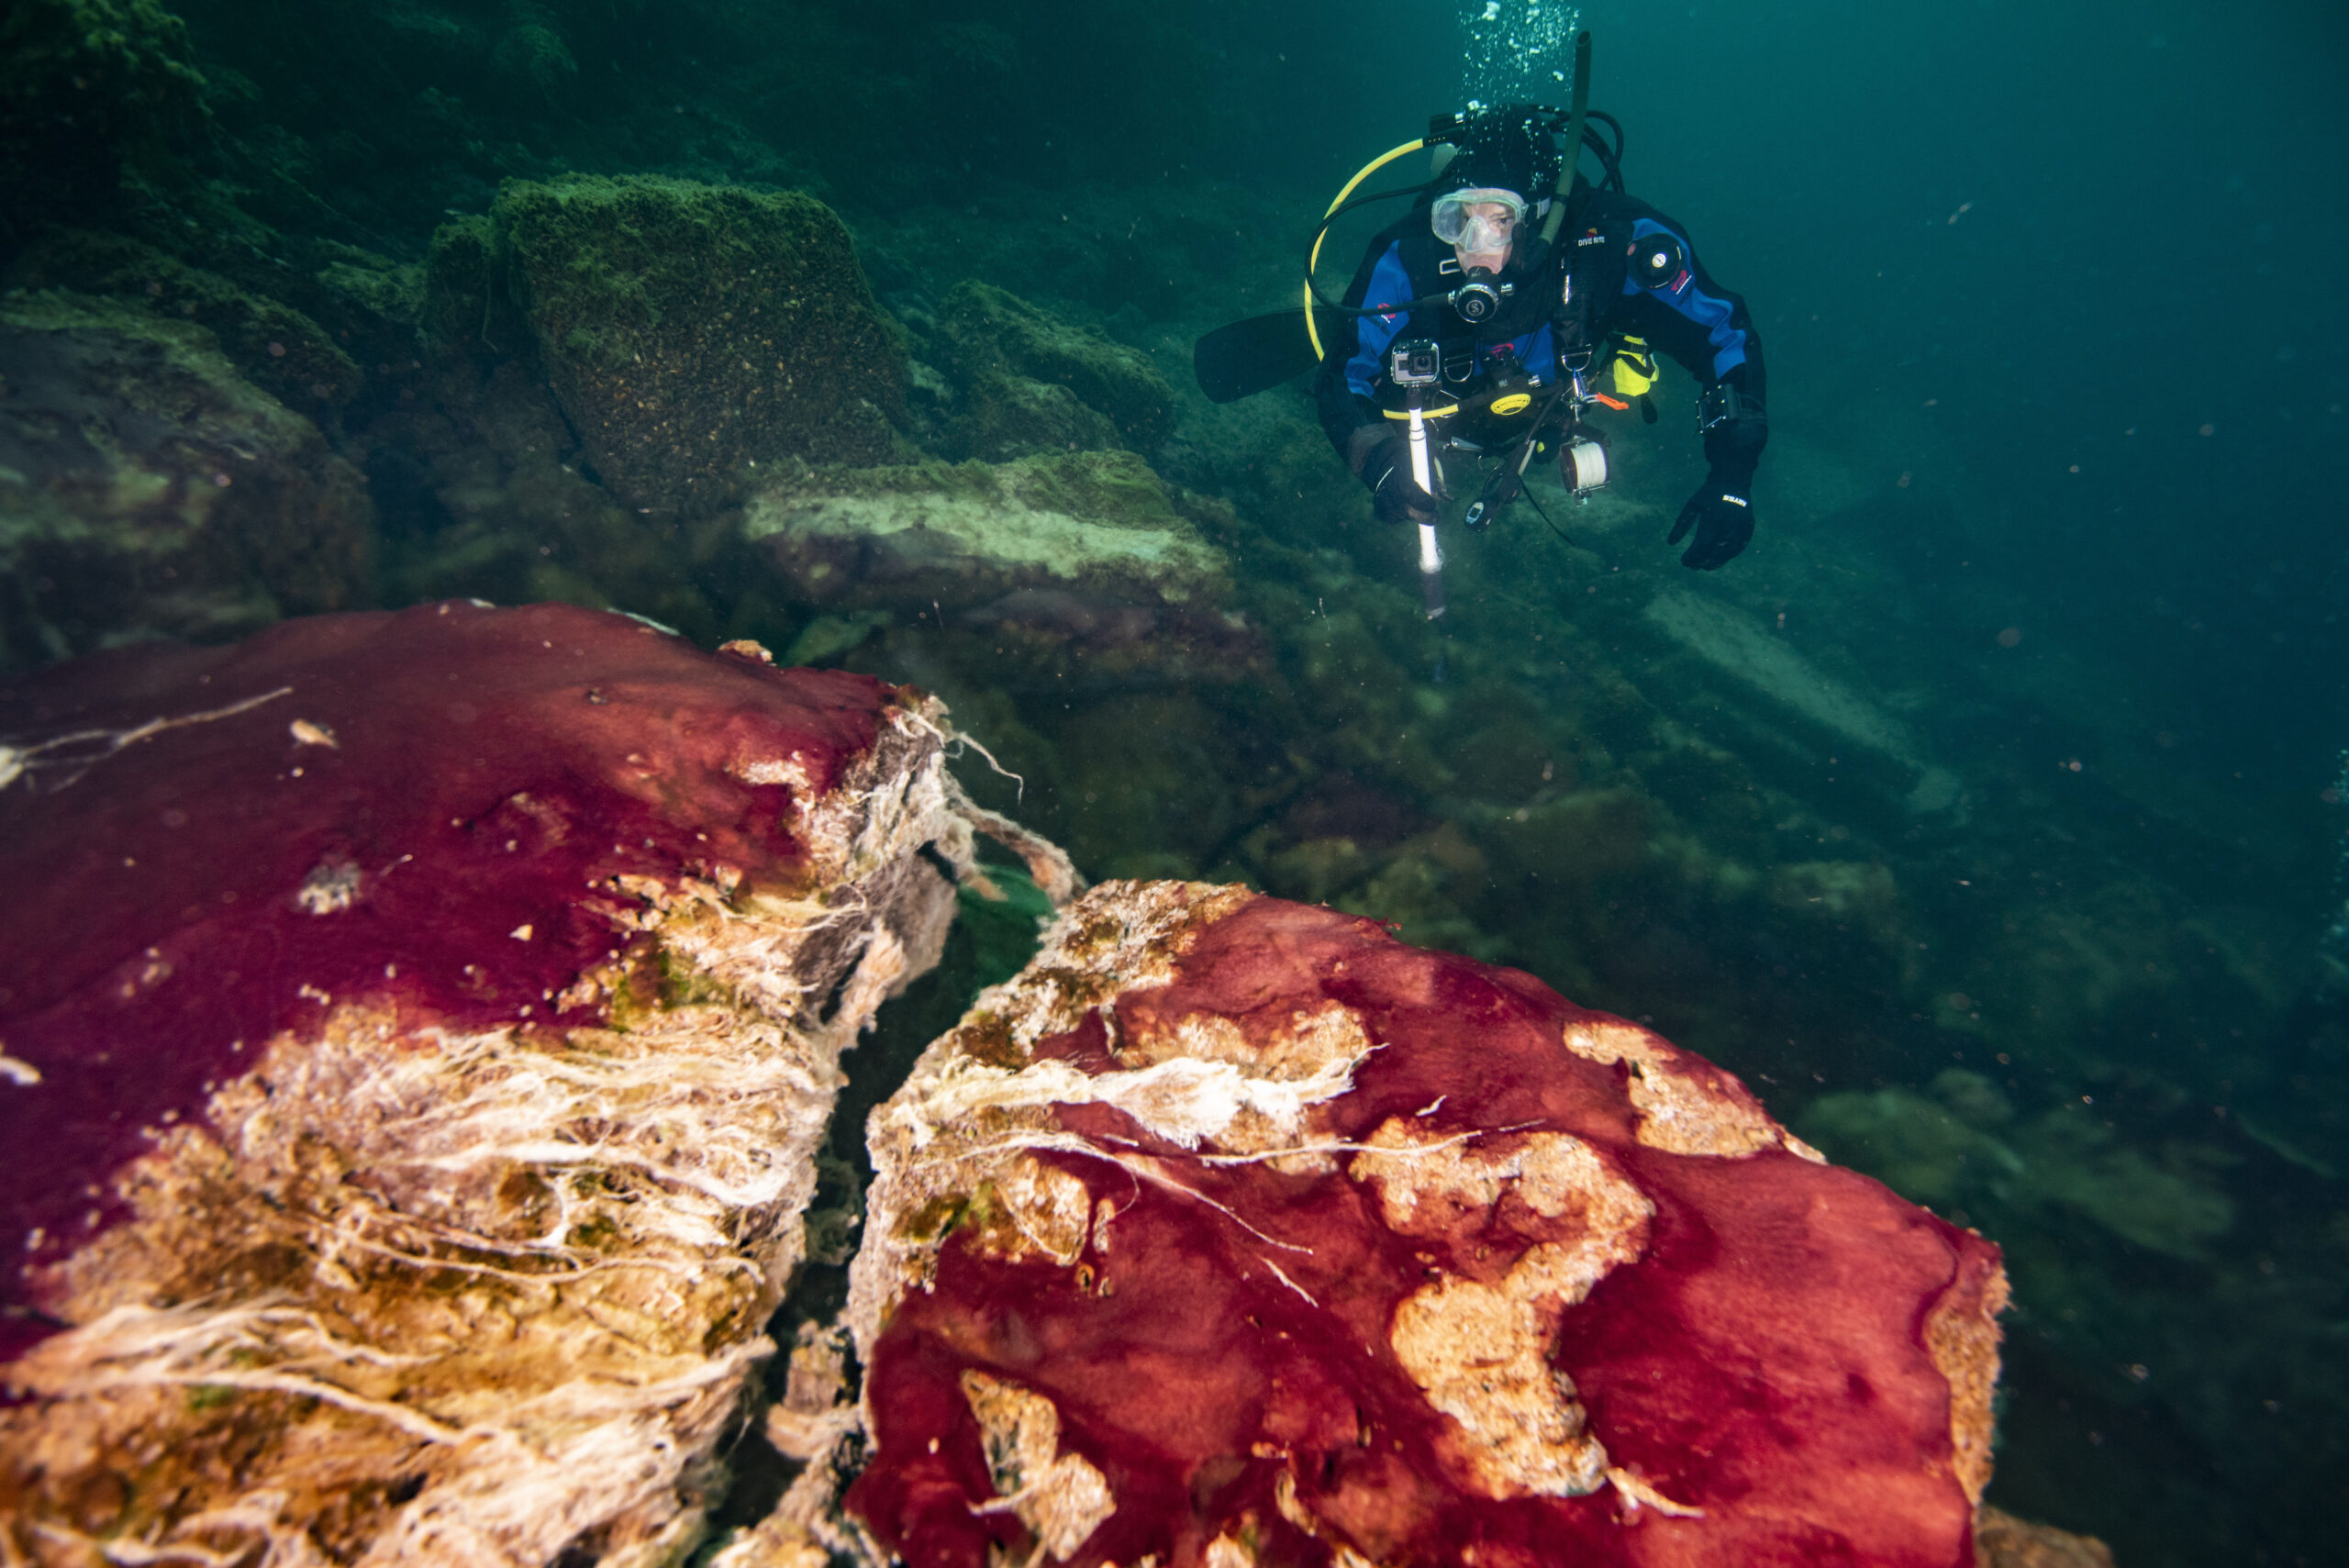 A scuba diver observes the purple, white and green microbes covering rocks in Lake Huron's Middle Island Sinkhole. Photo credit: Phil Hartmeyer, NOAA Thunder Bay National Marine Sanctuary.